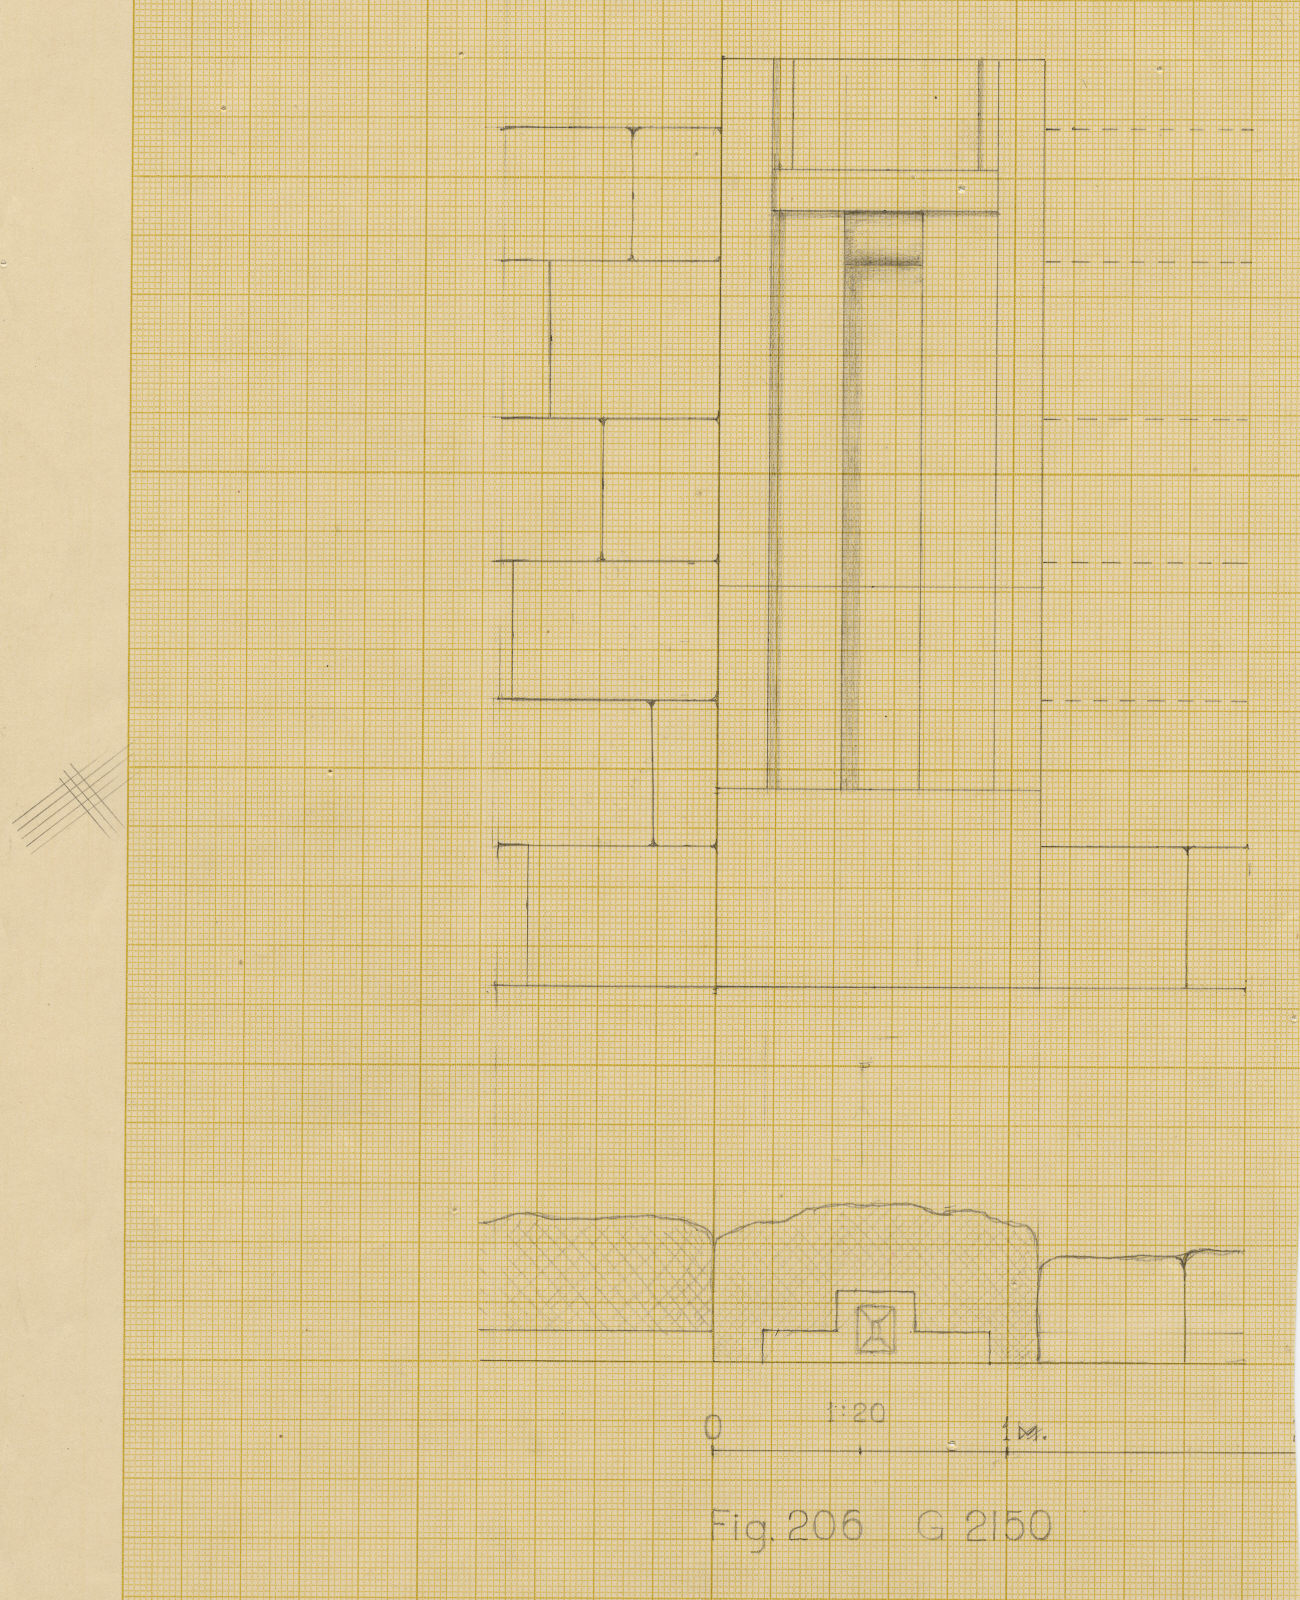 Maps and plans: G 2150, Plan and section of E face, N niche